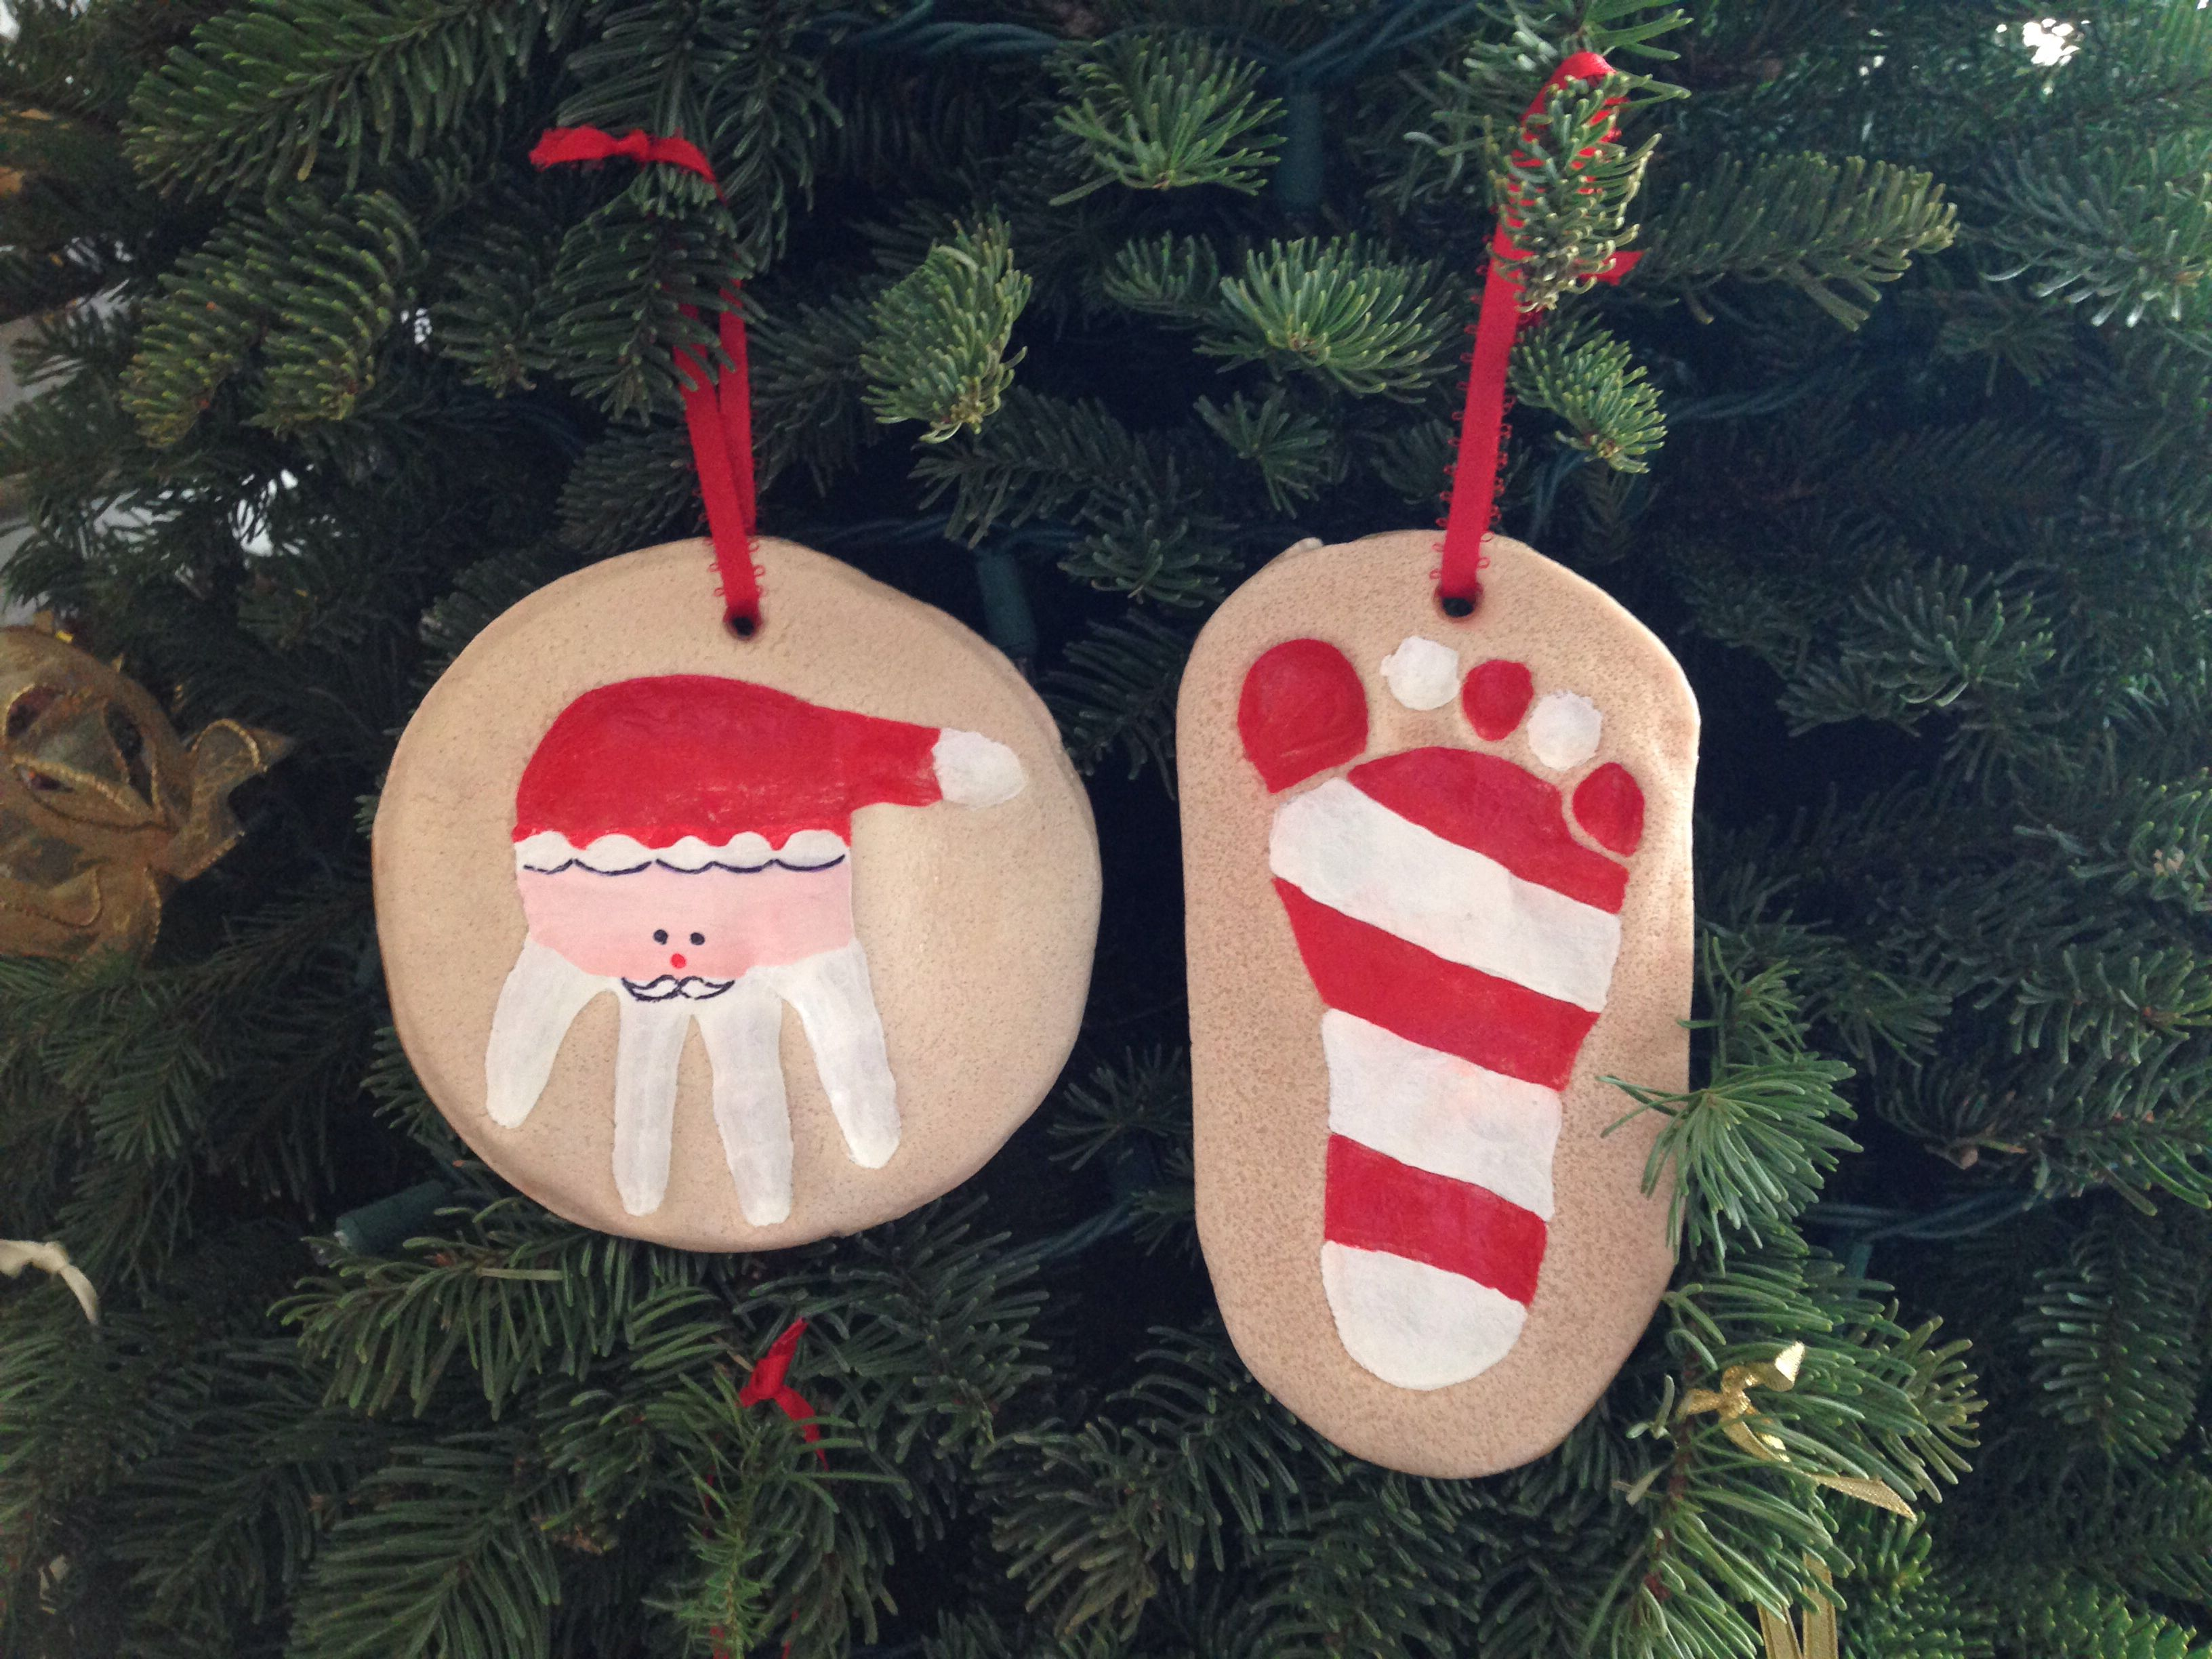 Baby Hand And Footprint Salt Dough Ornaments Baby Christmas Ornaments Christmas Gifts For Girls Christmas Ornaments To Make